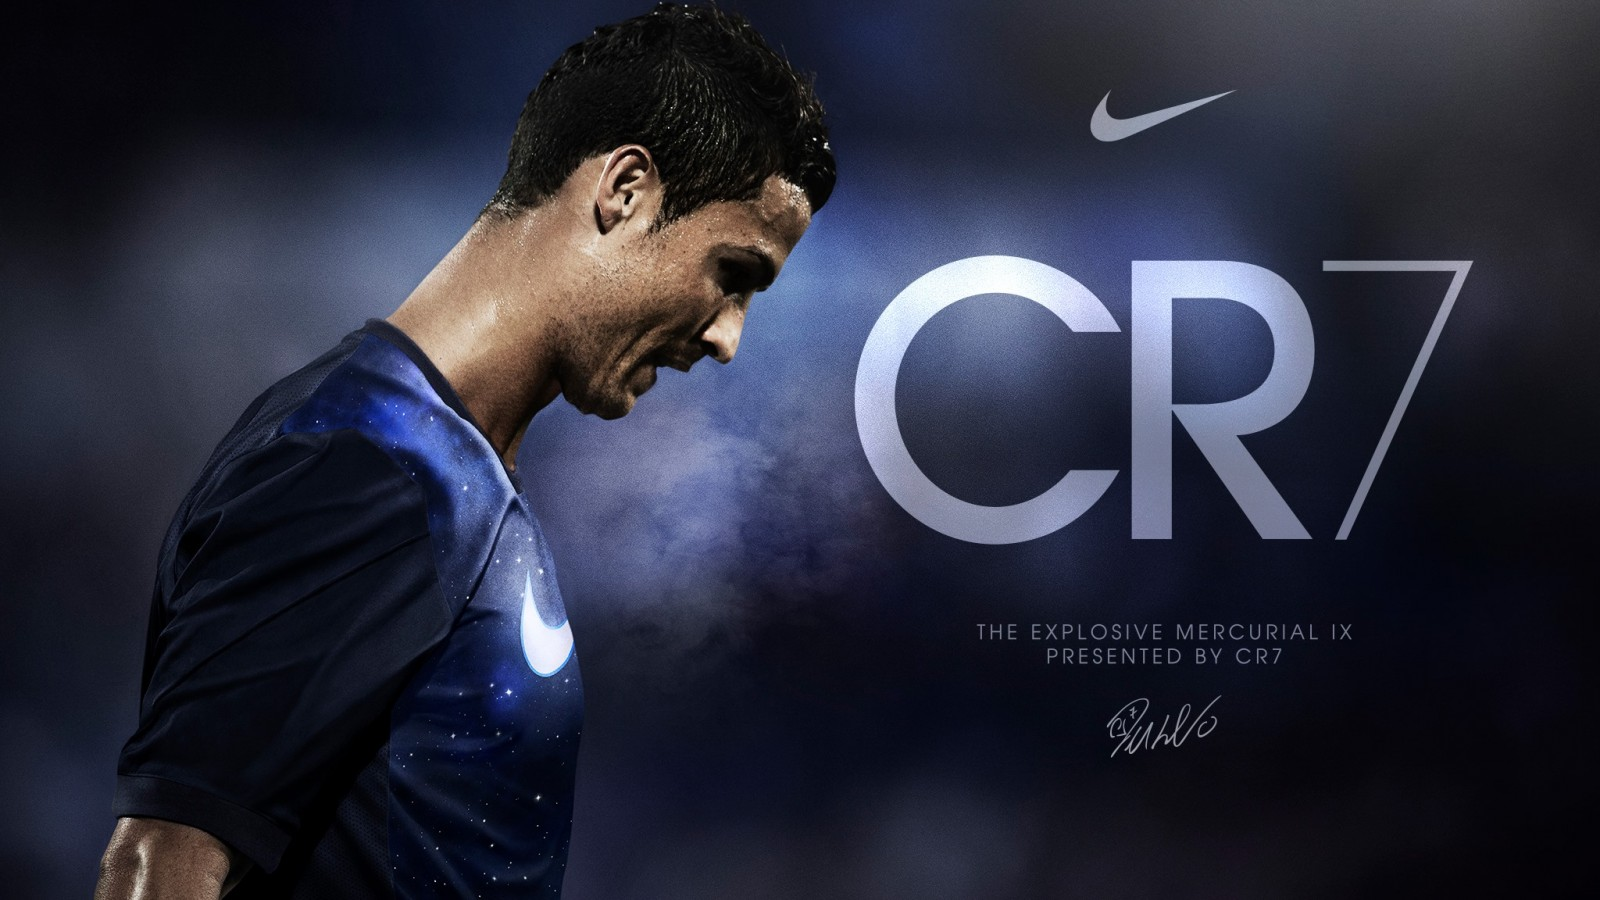 Ronaldo HD Wallpaper 2014